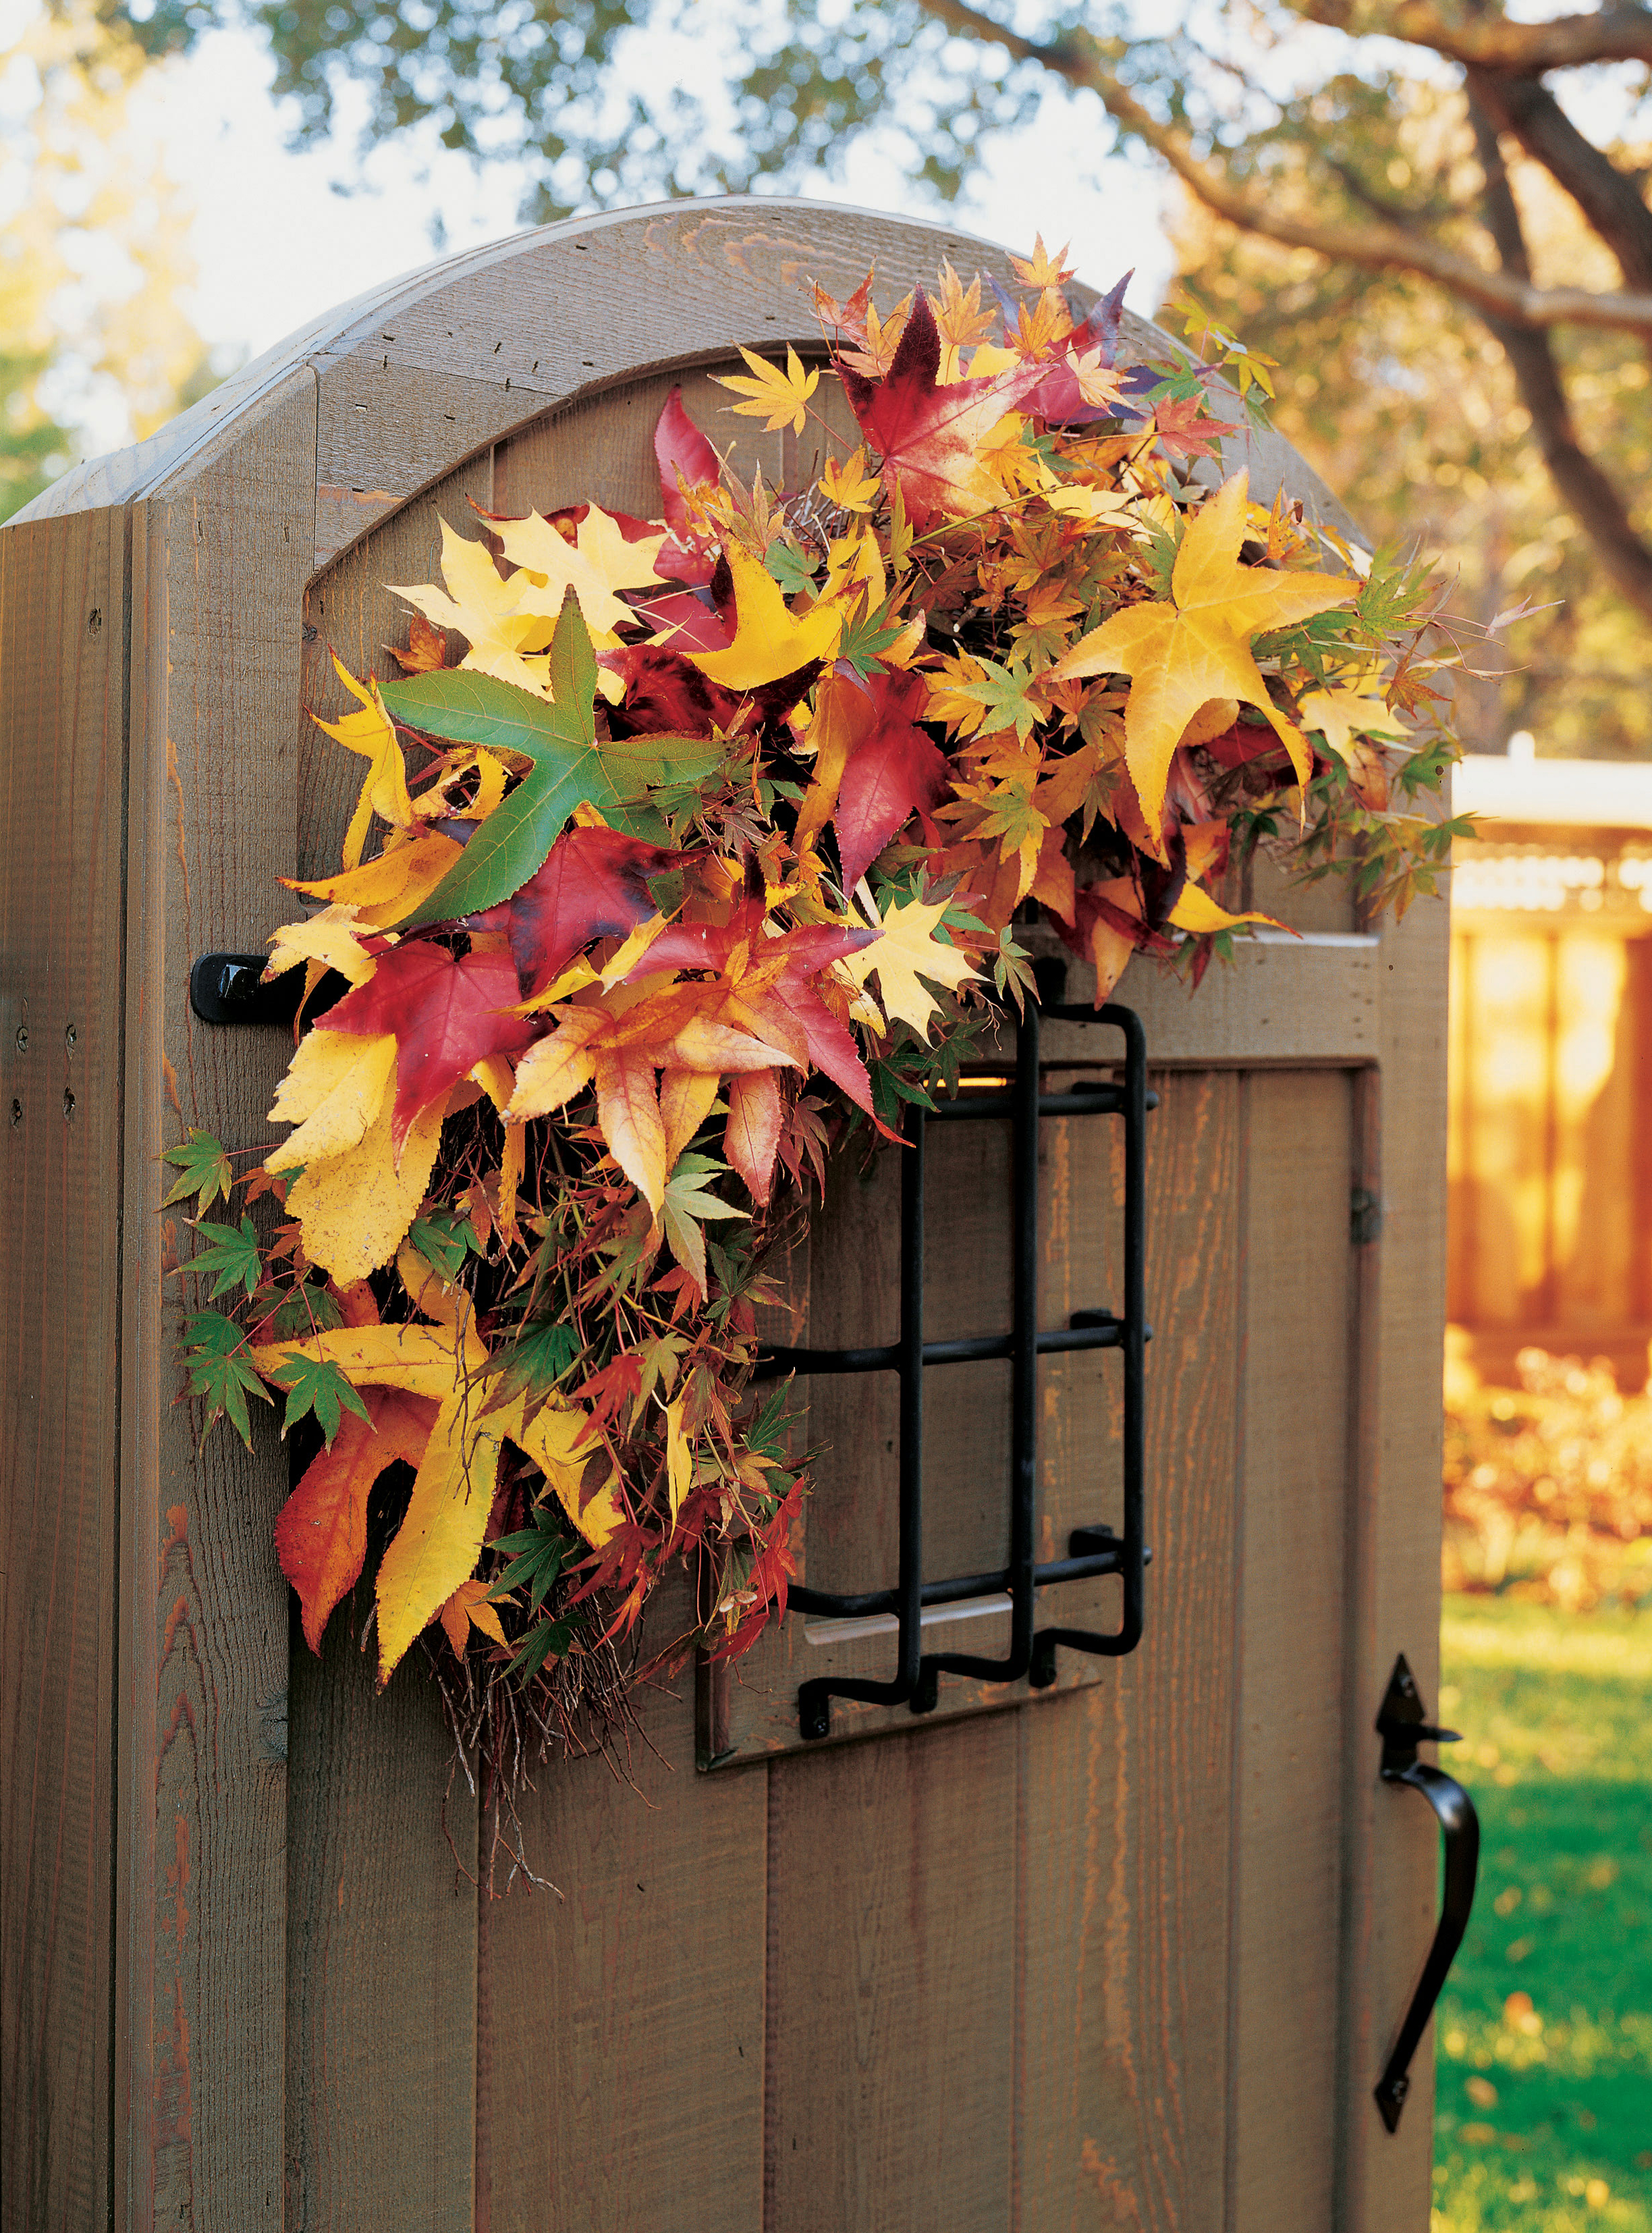 Decorative fall crafts